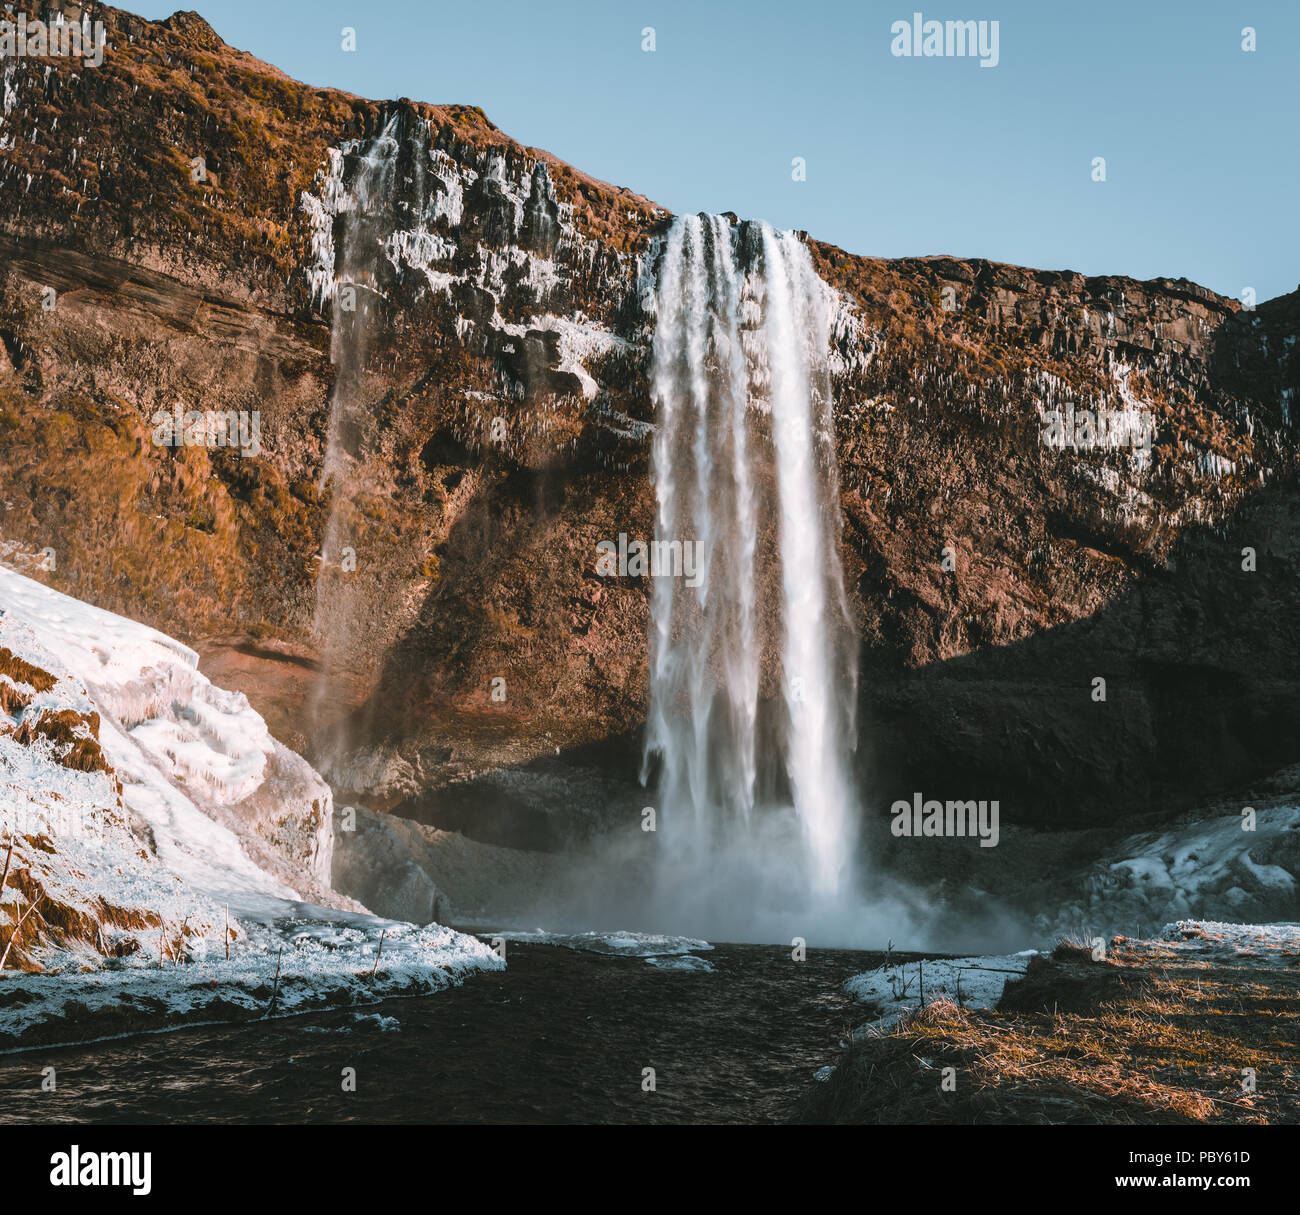 Wonderful landscape from Seljalandsfoss Waterfall in Iceland on a clear day with blue sky and snow. Stock Photo